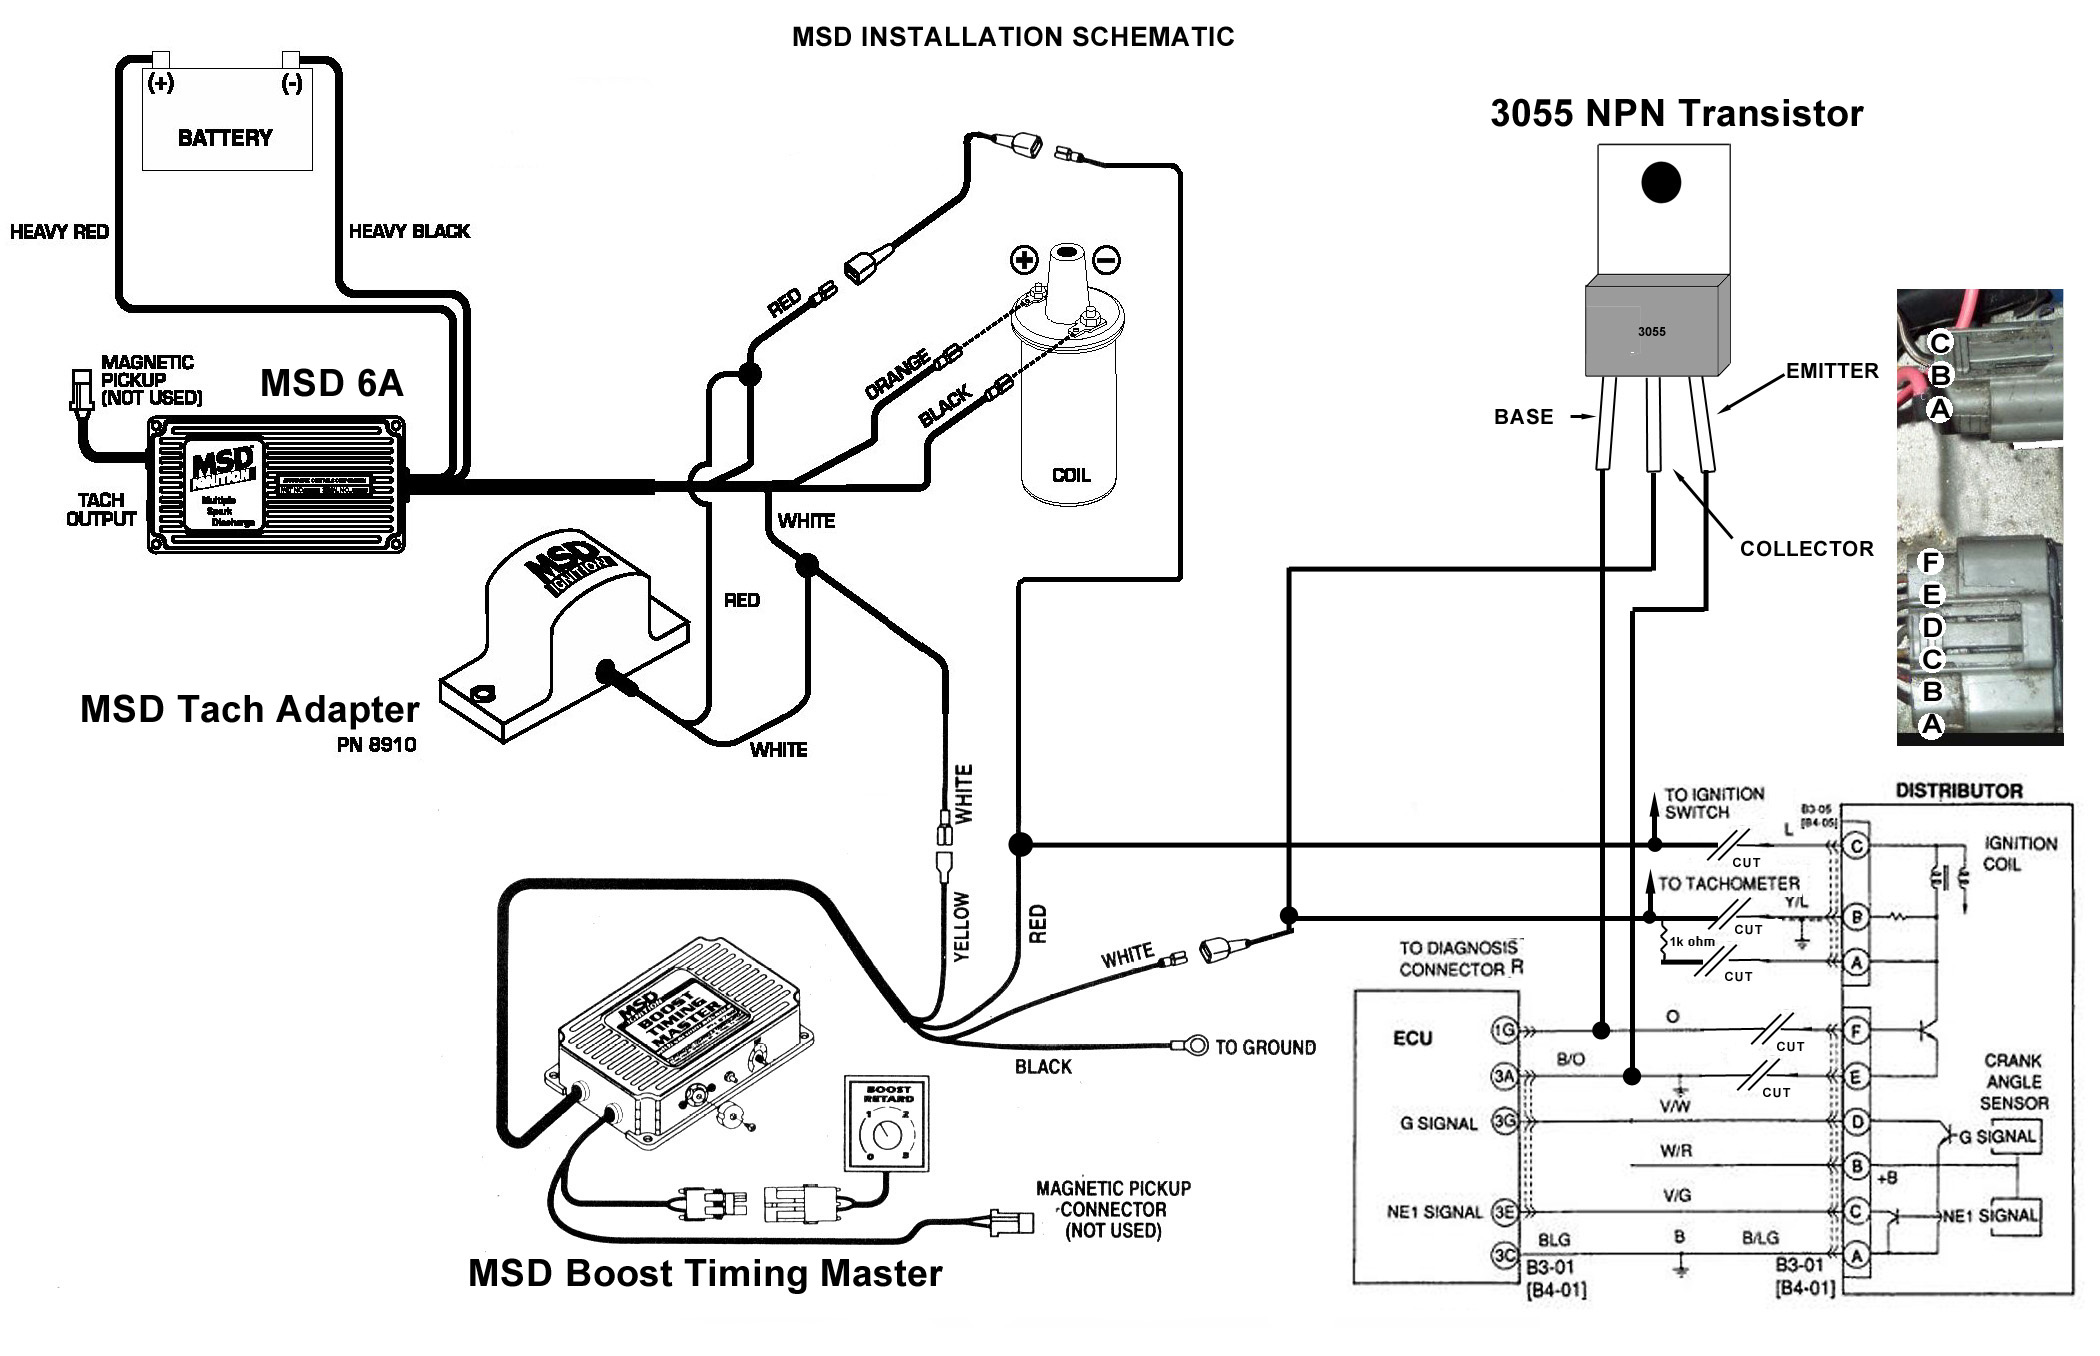 msd wiring diagram mazda mx 6 forum rh mx6 com 1993 Mazda MX3 Purple 1993 Mazda MX-5